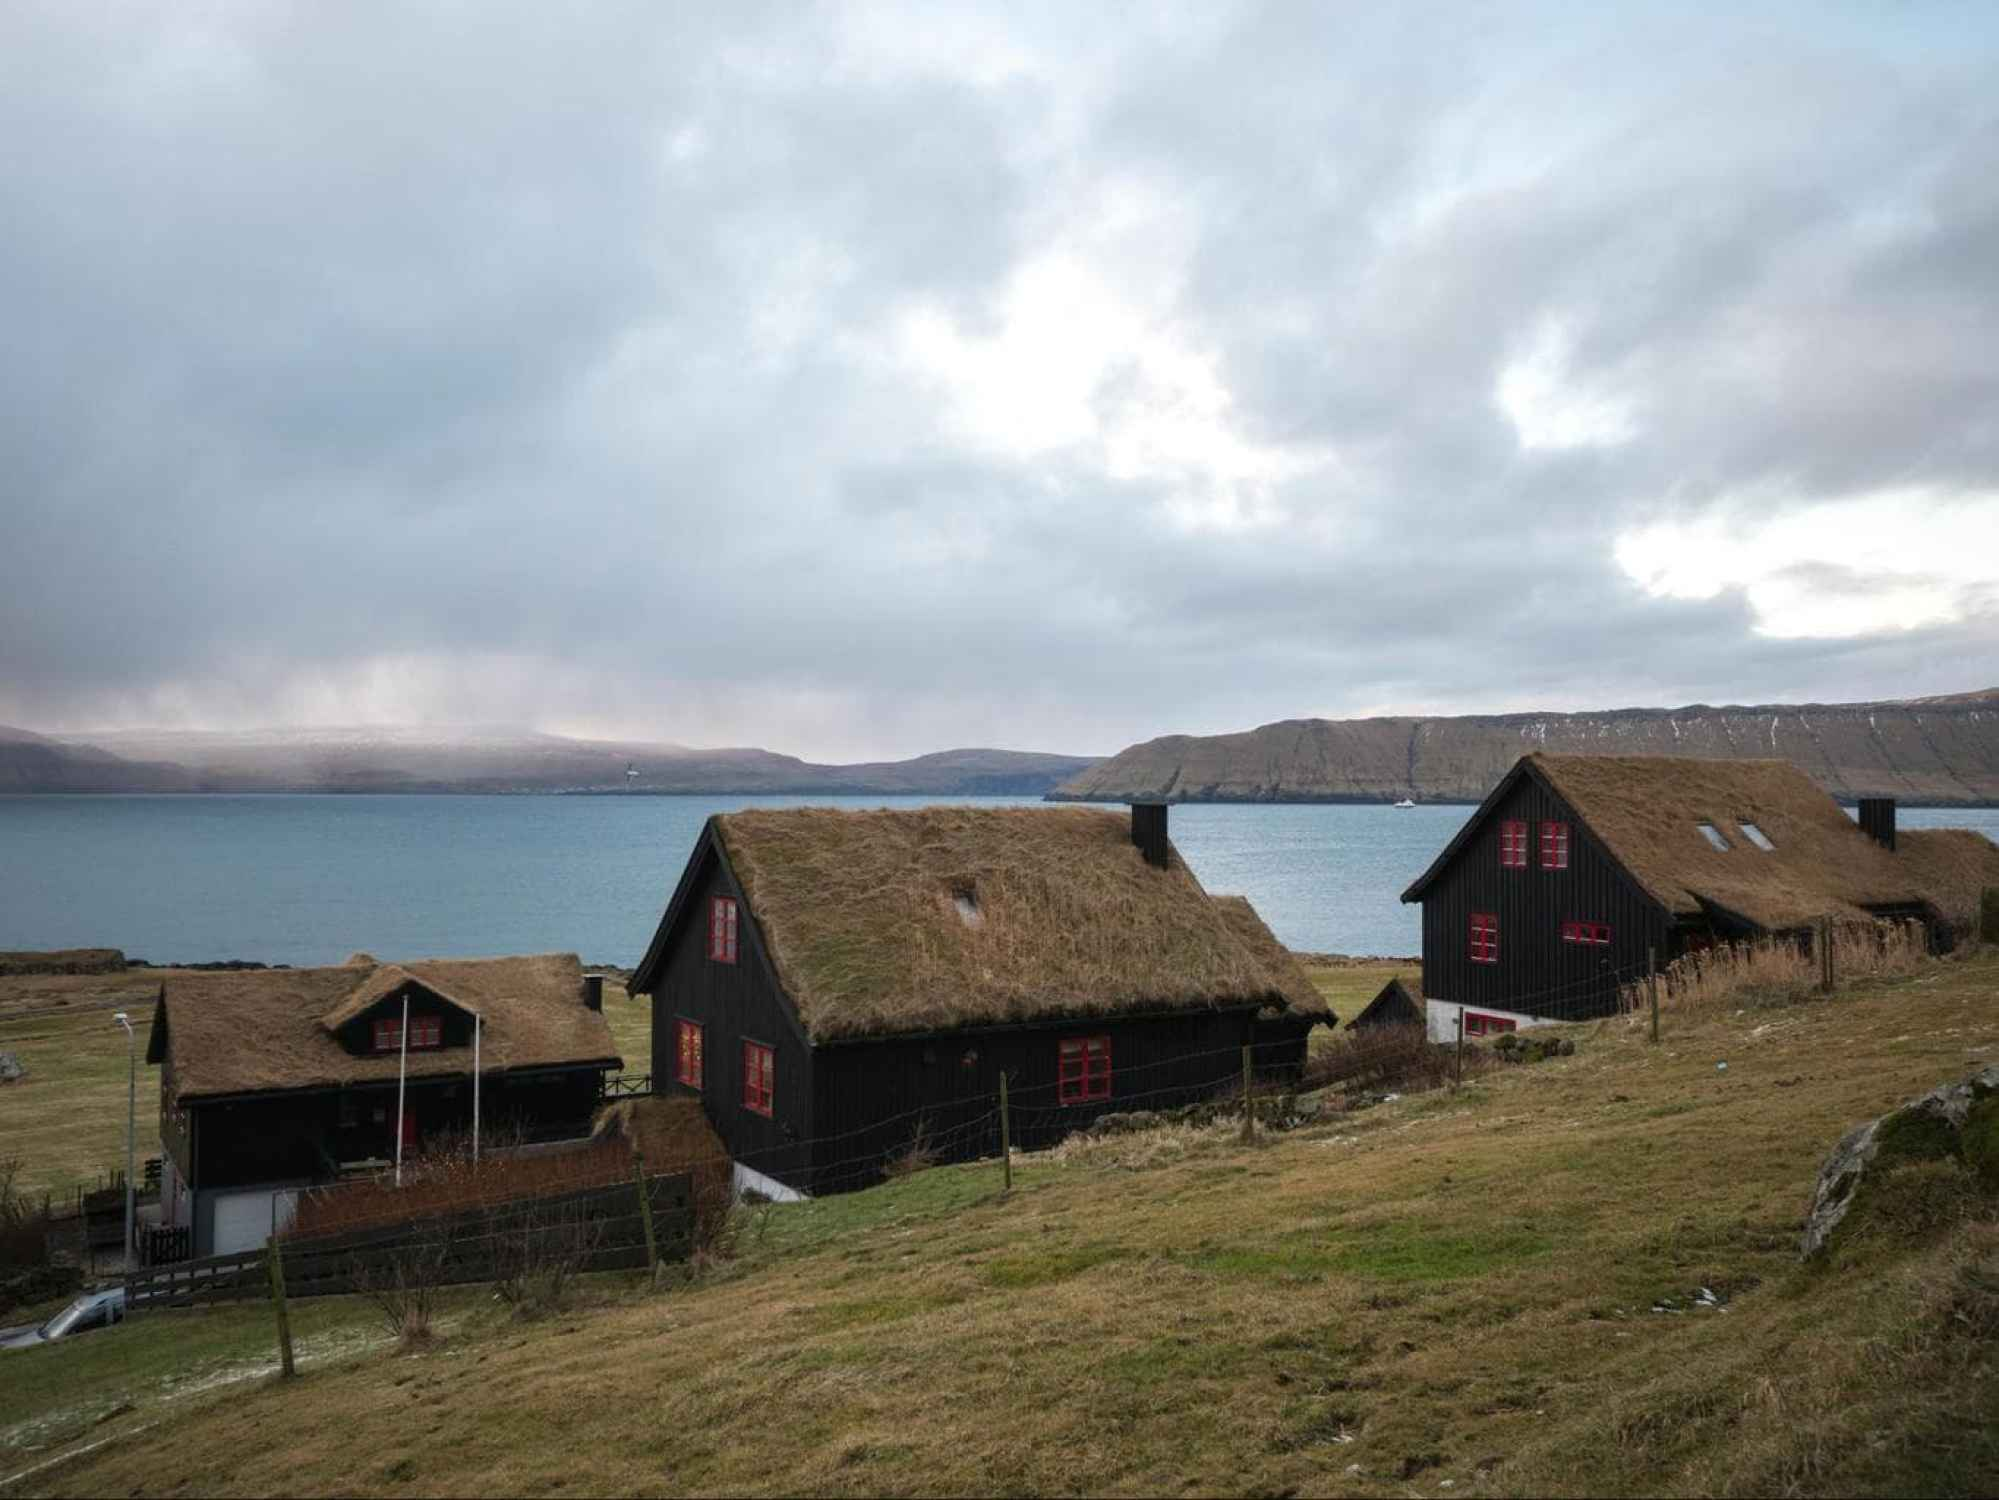 Moss covered houses in Faroes Islands